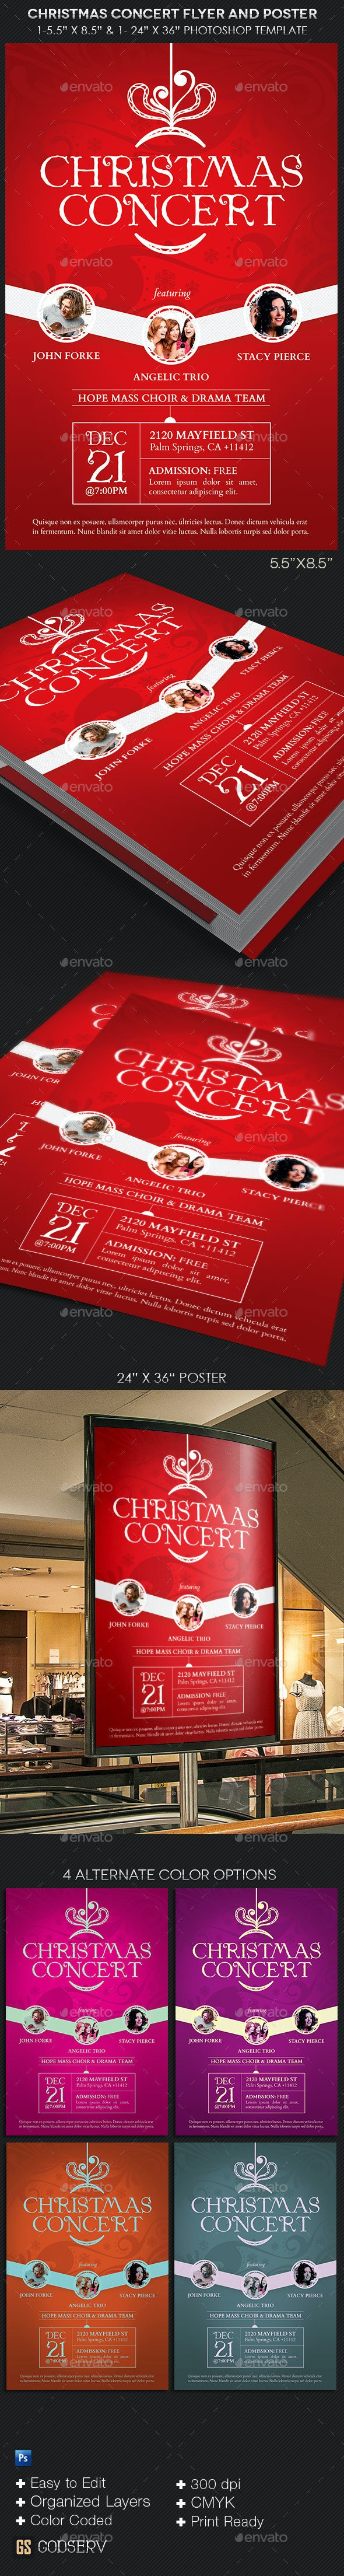 Christmas Concert Flyer Poster Template - Church Flyers